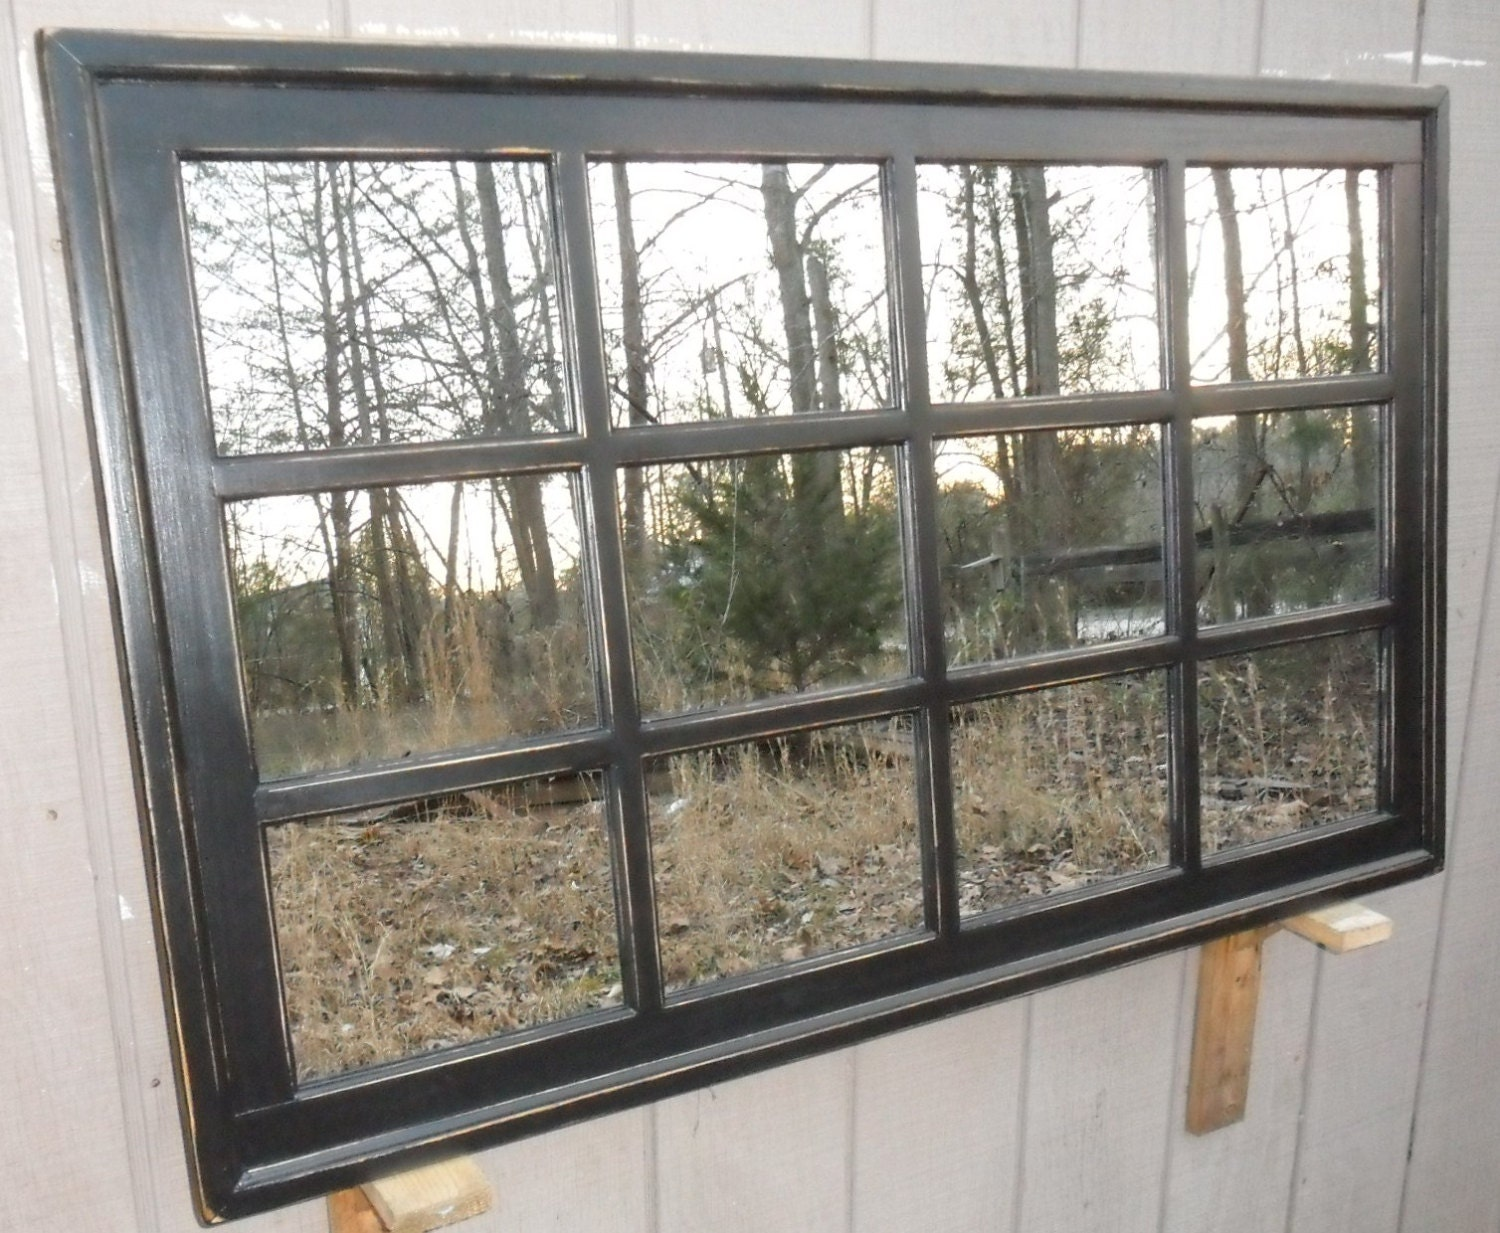 Distressed framed mirror window mirror window pane window Window pane mirror